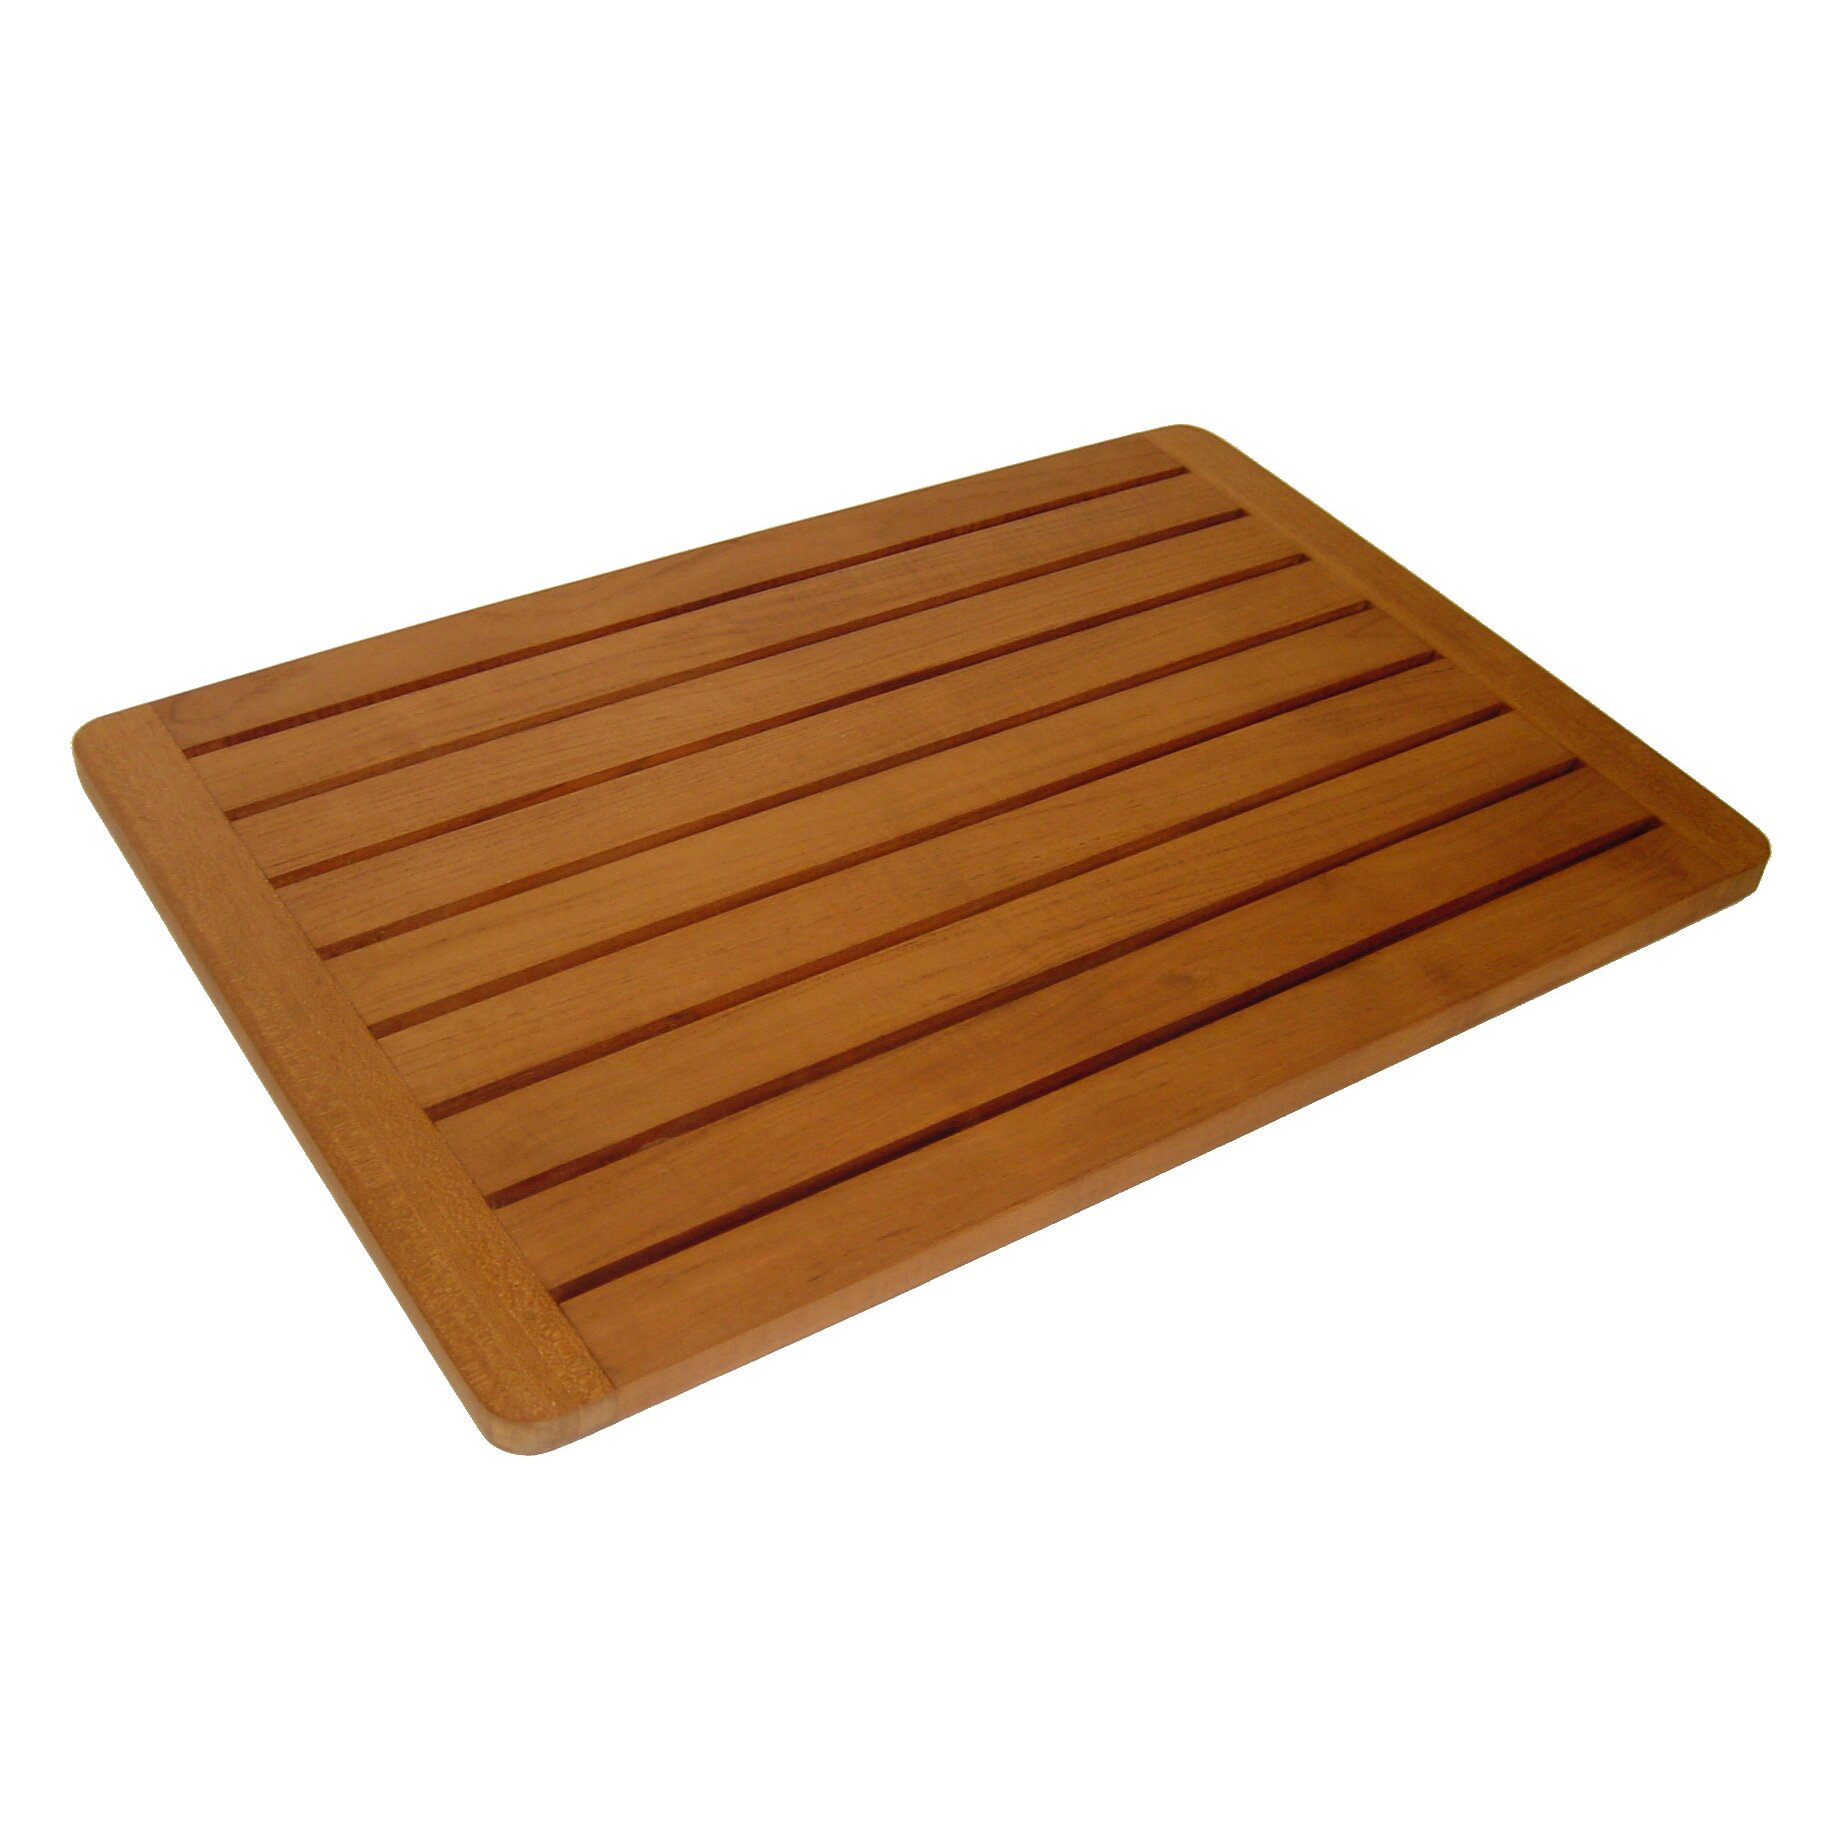 Aqua Teak Spa Teak Bath and Shower Mat amp Reviews Wayfair : Aqua Teak Spa Teak Bath and Shower Mat 302 from www.wayfair.com size 1822 x 1822 jpeg 300kB